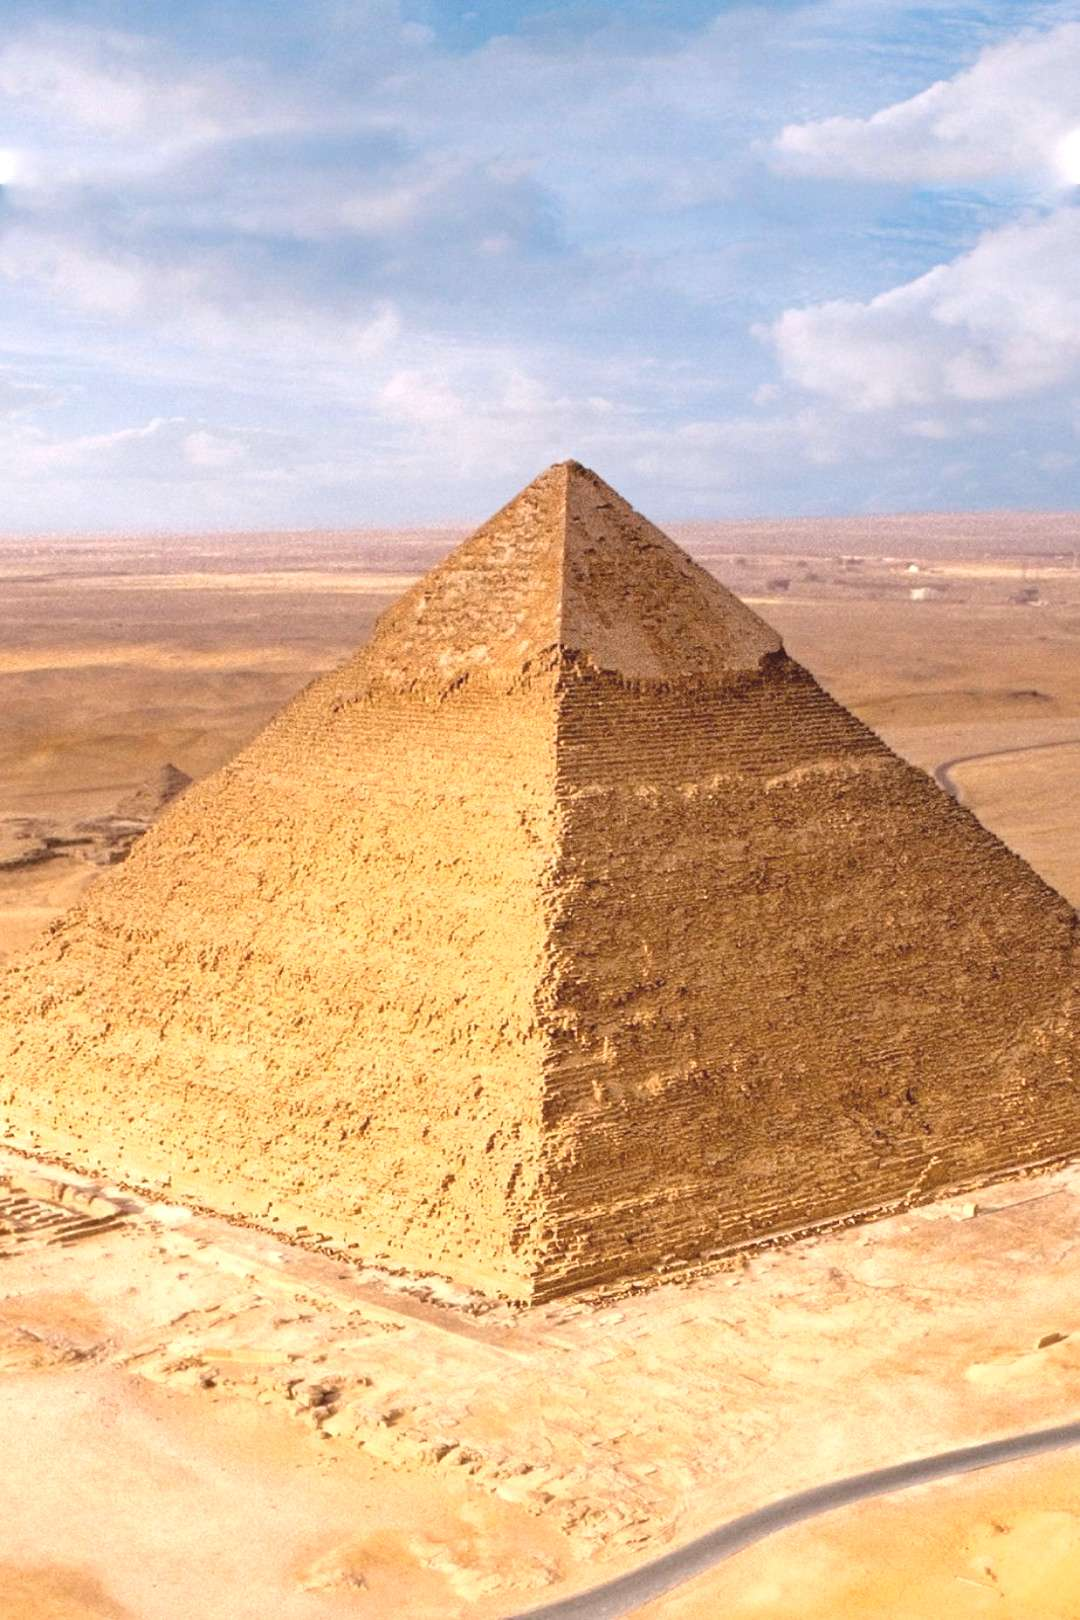 The pyramids of Egypt fascinated travelers and conquerors in ancient times and continue to inspire